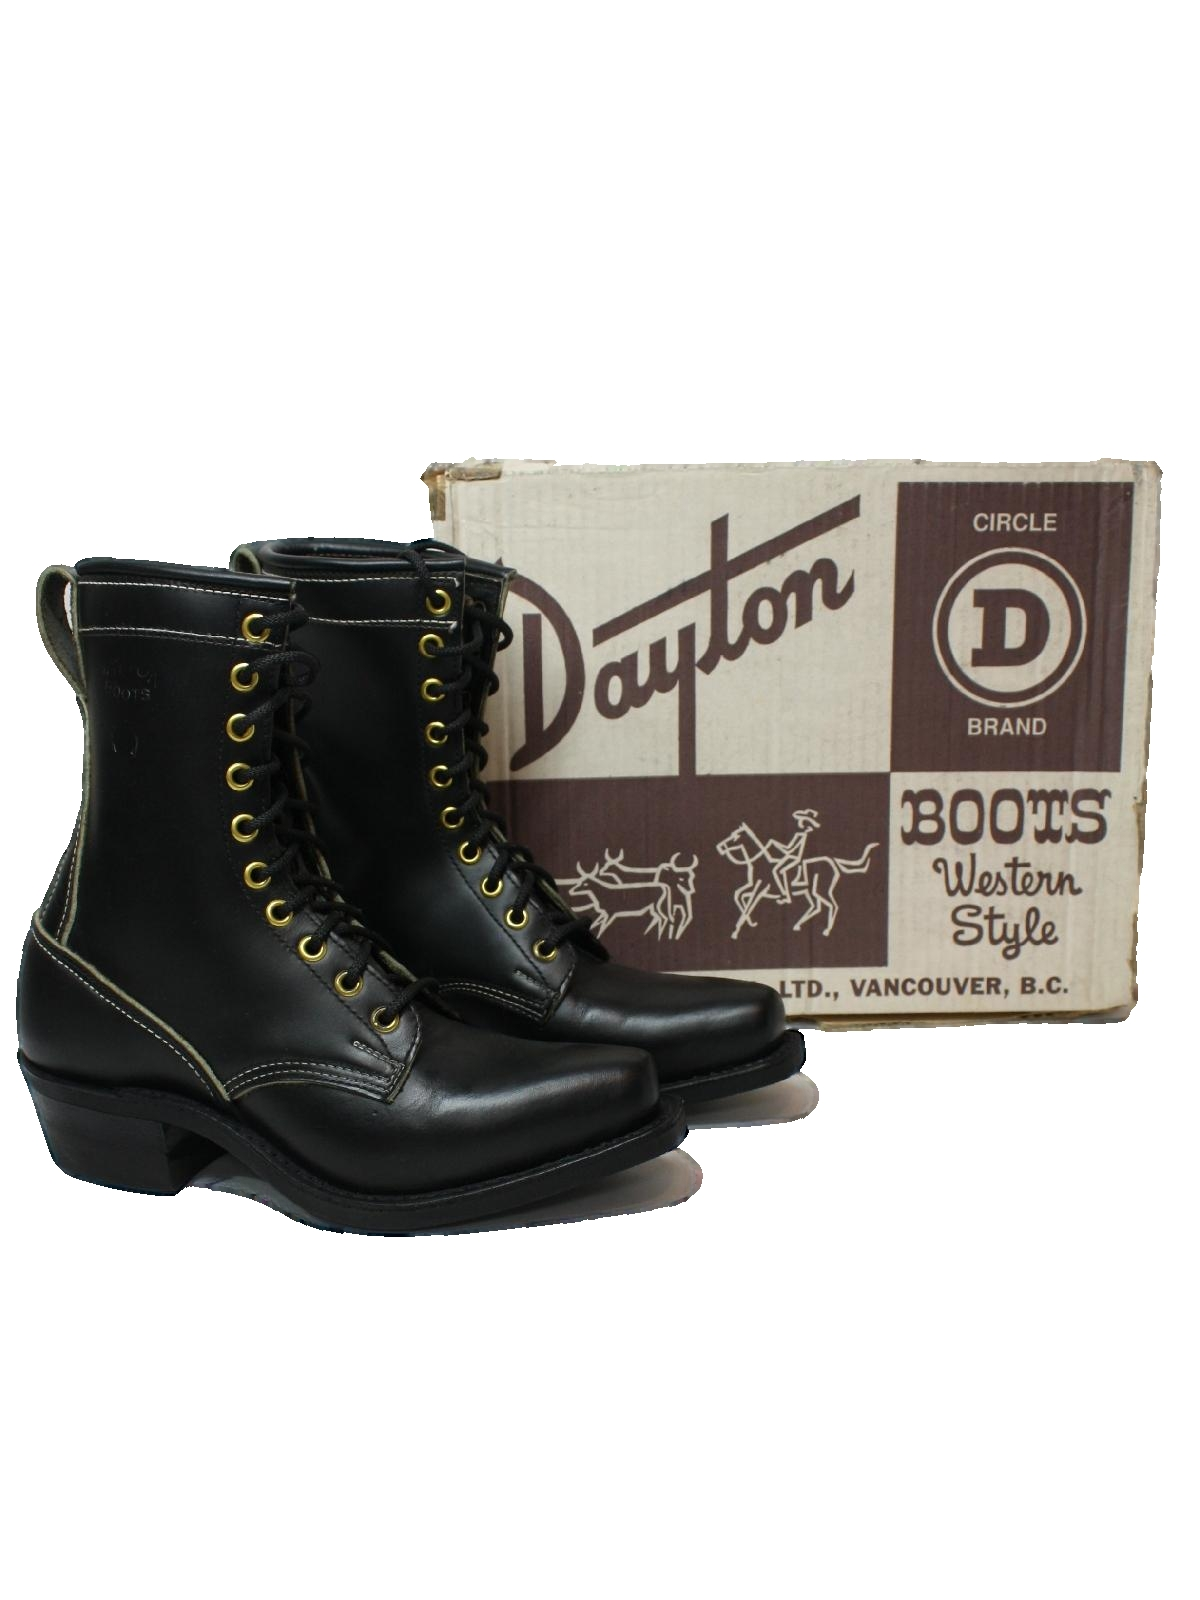 1980's Dayton Circle D Western Style Boots, Vancouver BC Womens Shoes